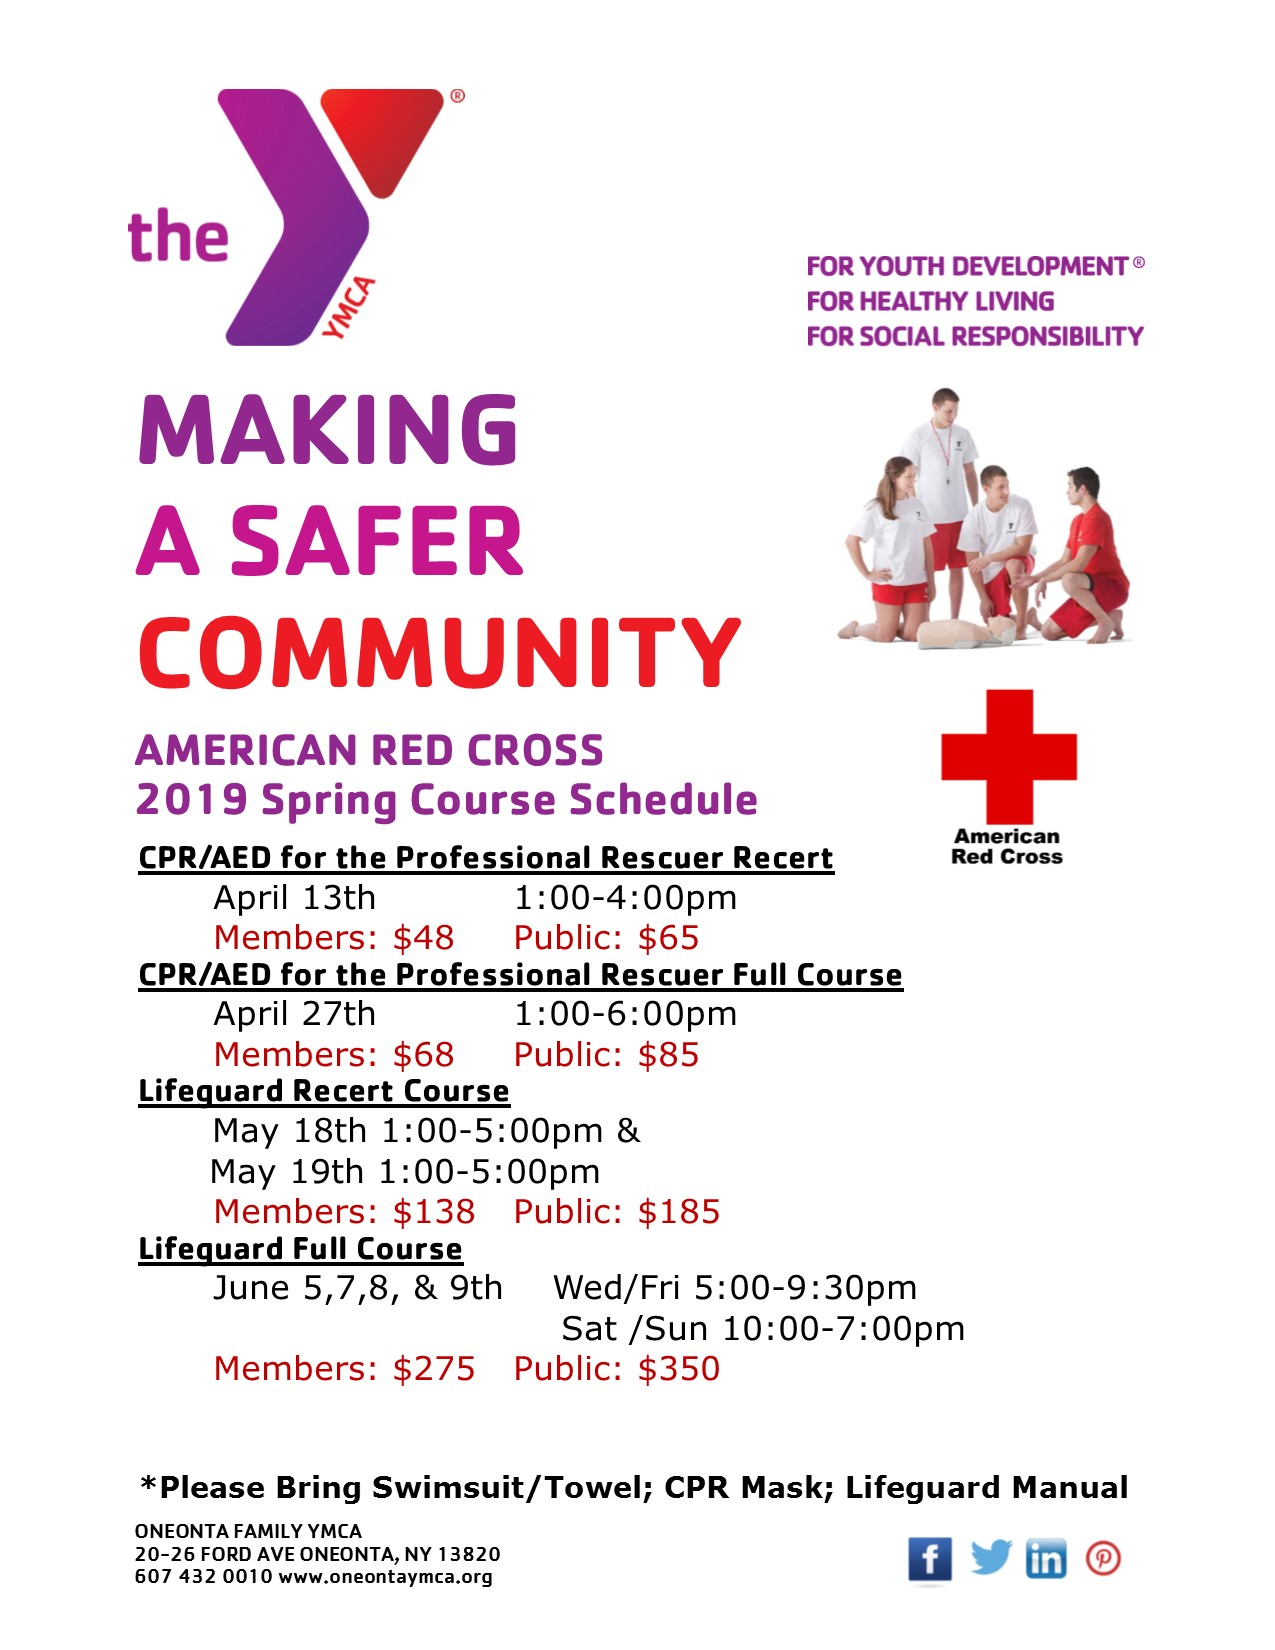 Red Cross Spring Course Schedule